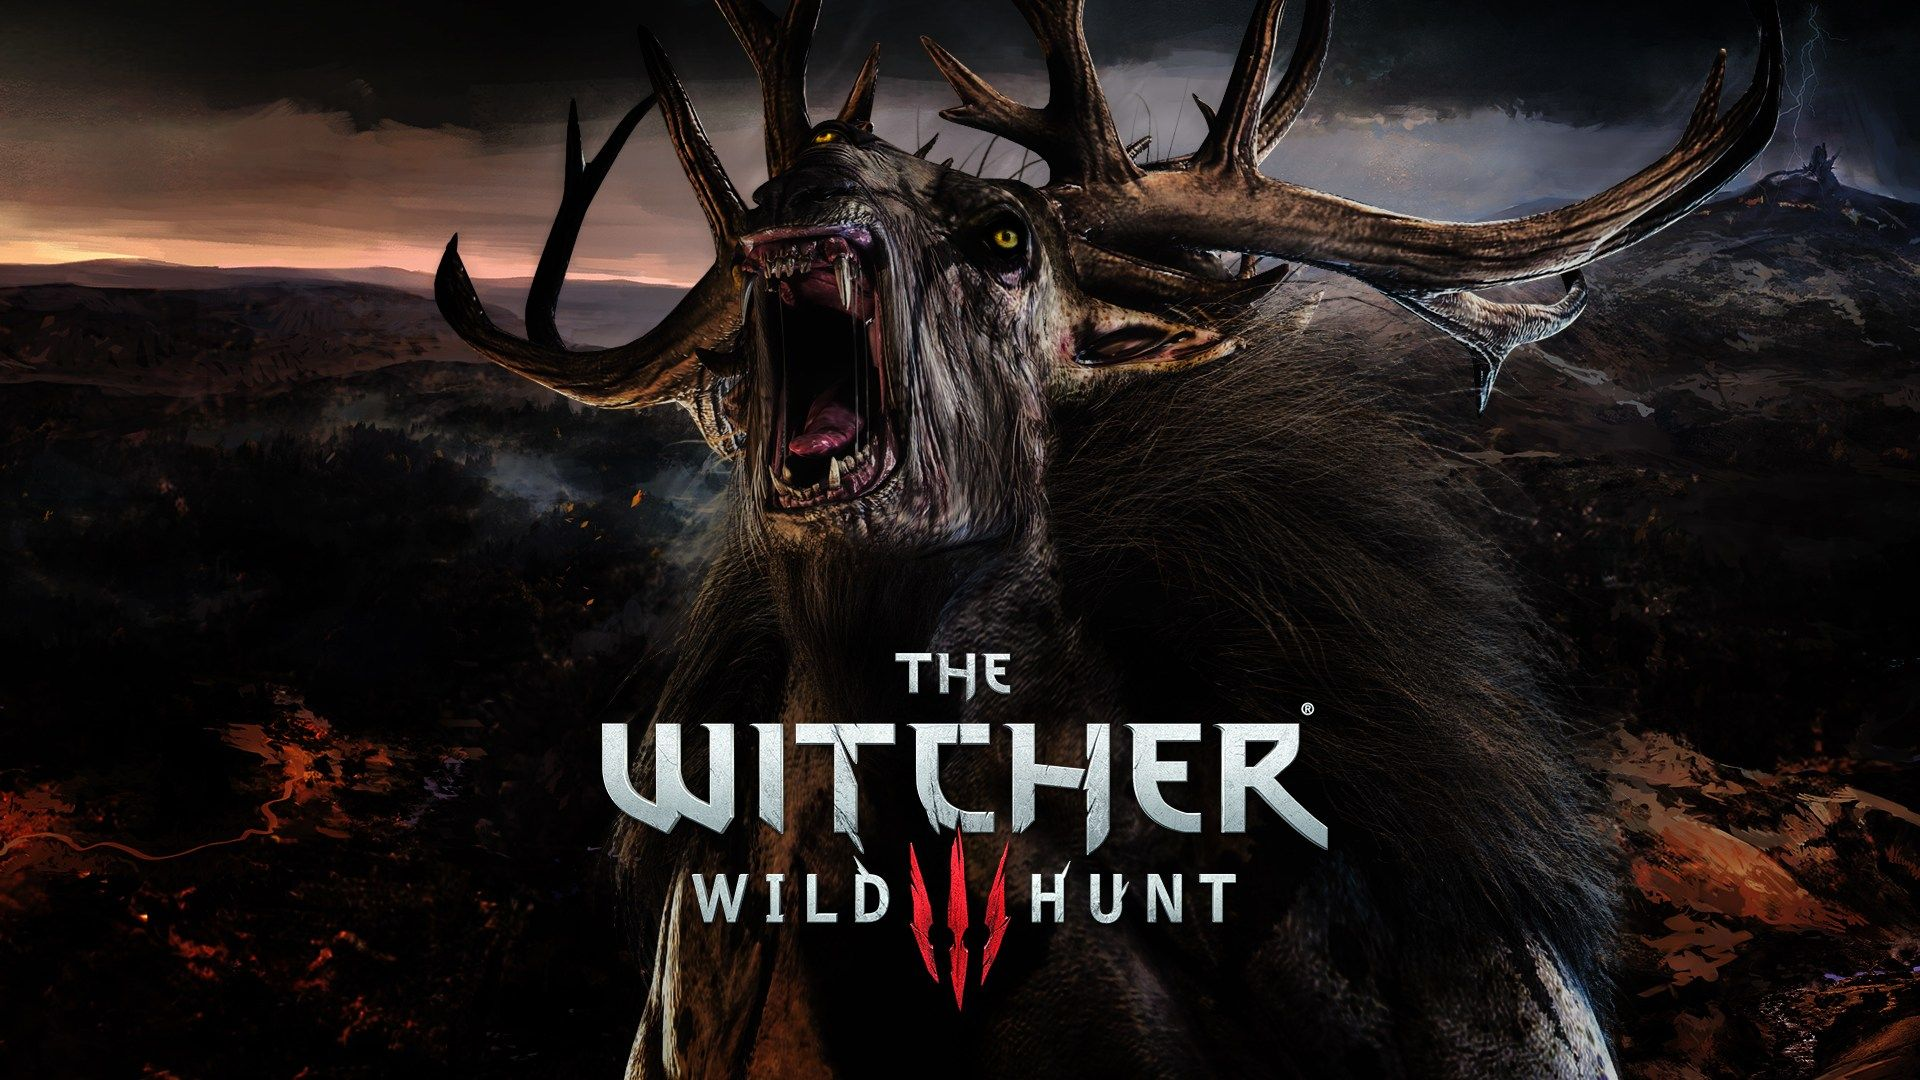 Witcher 3 Wallpaper Hd: HD The Witcher 3 Wild Hunt Wallpaper